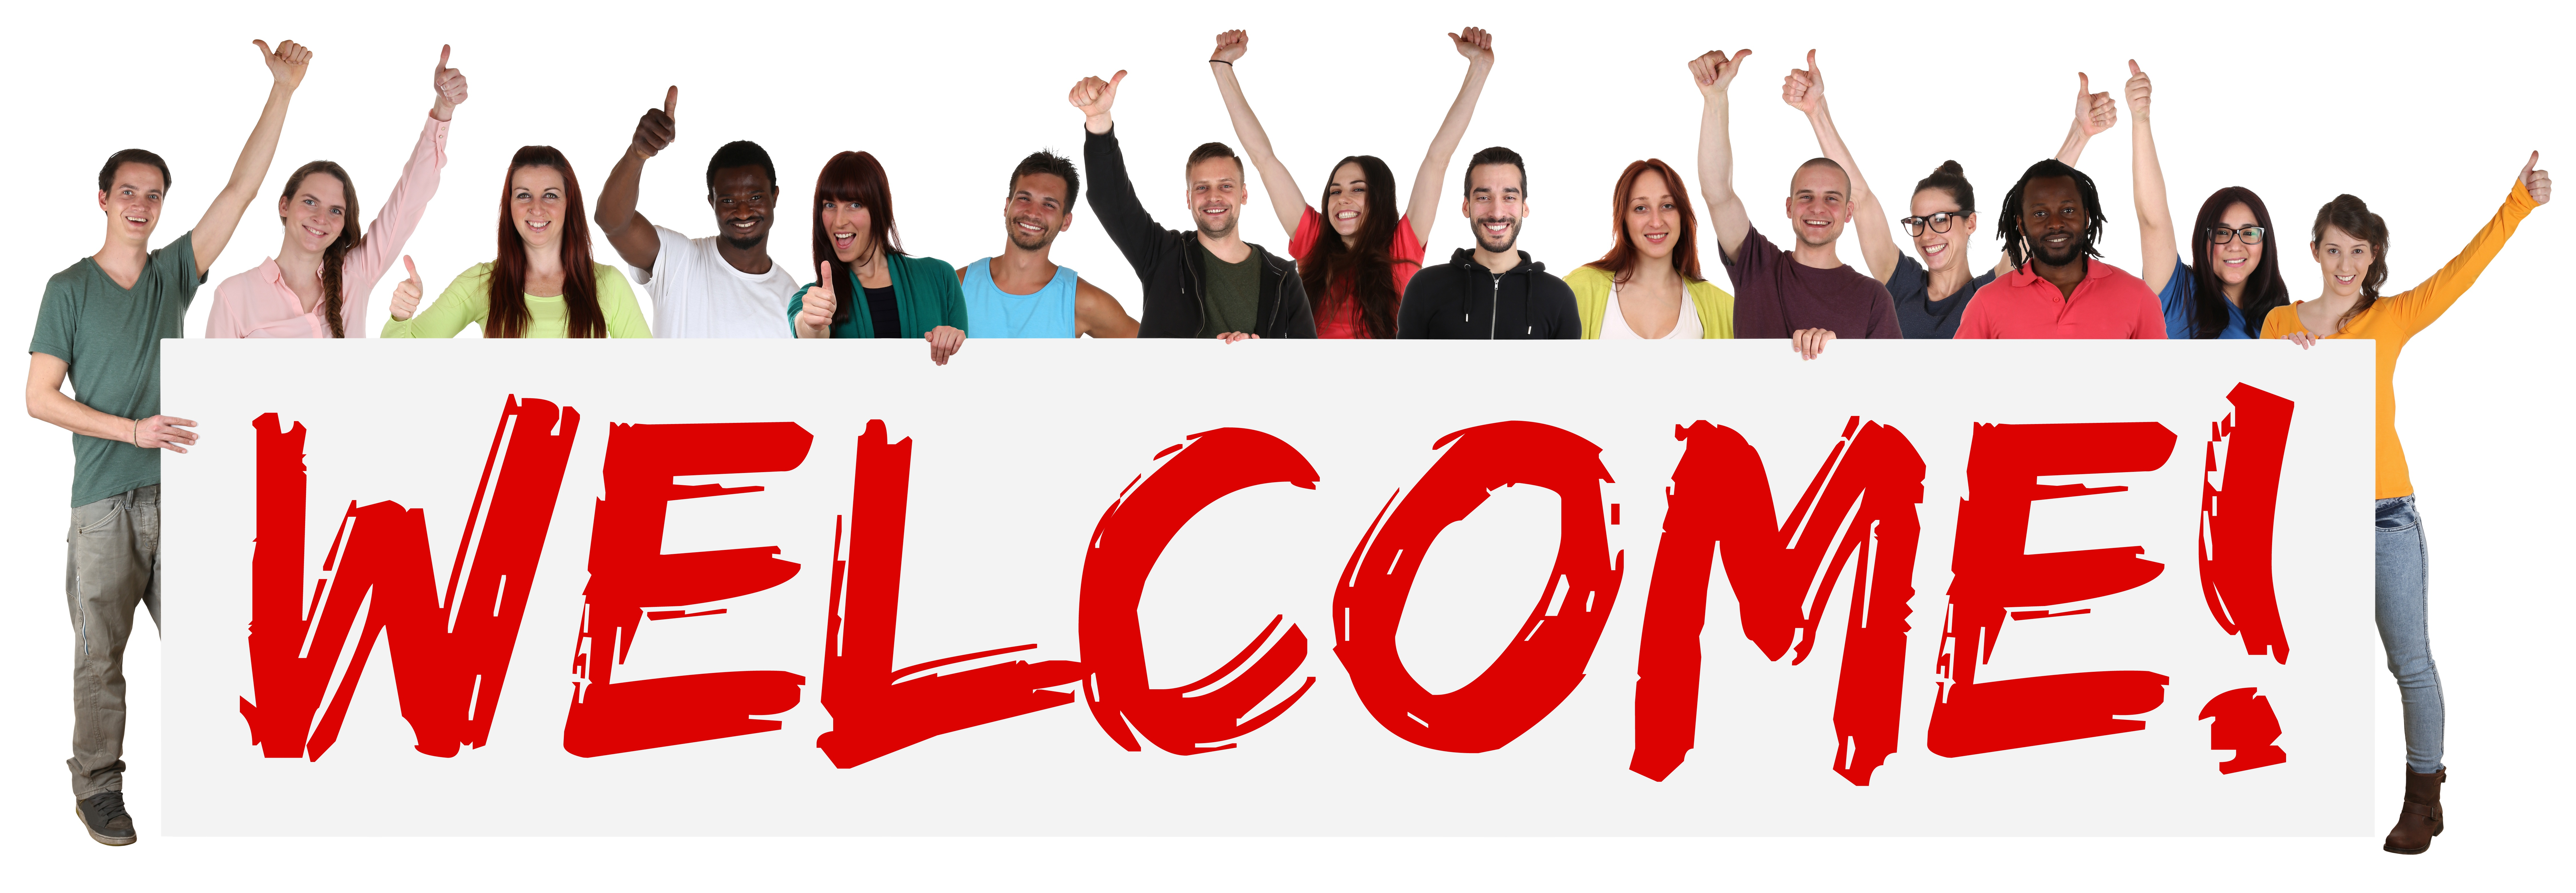 People standing with welcome sign